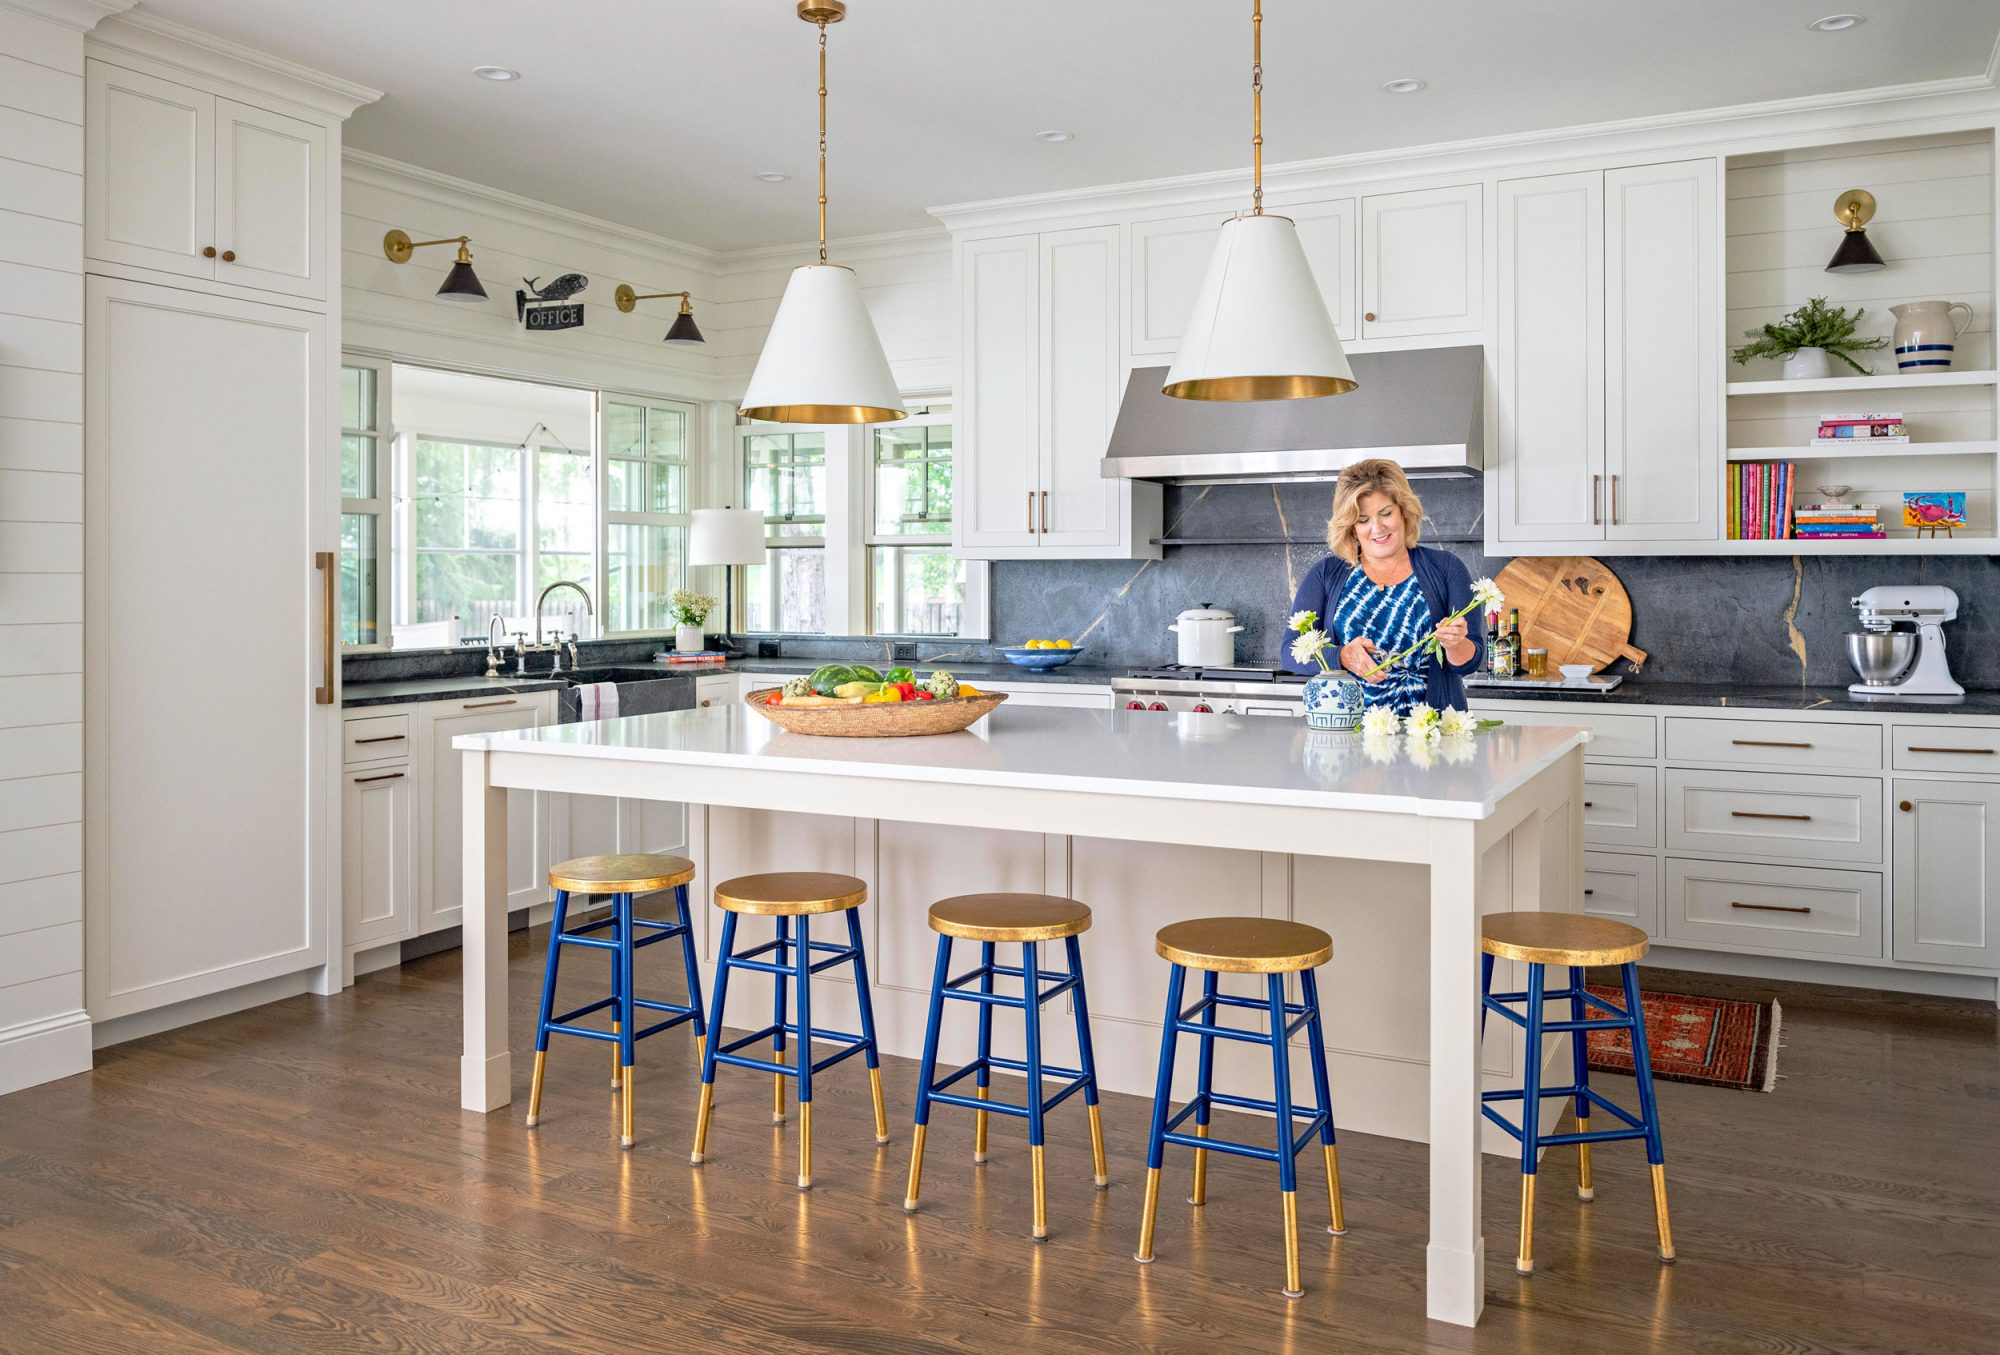 Kitchens For Every Style Midwest Living